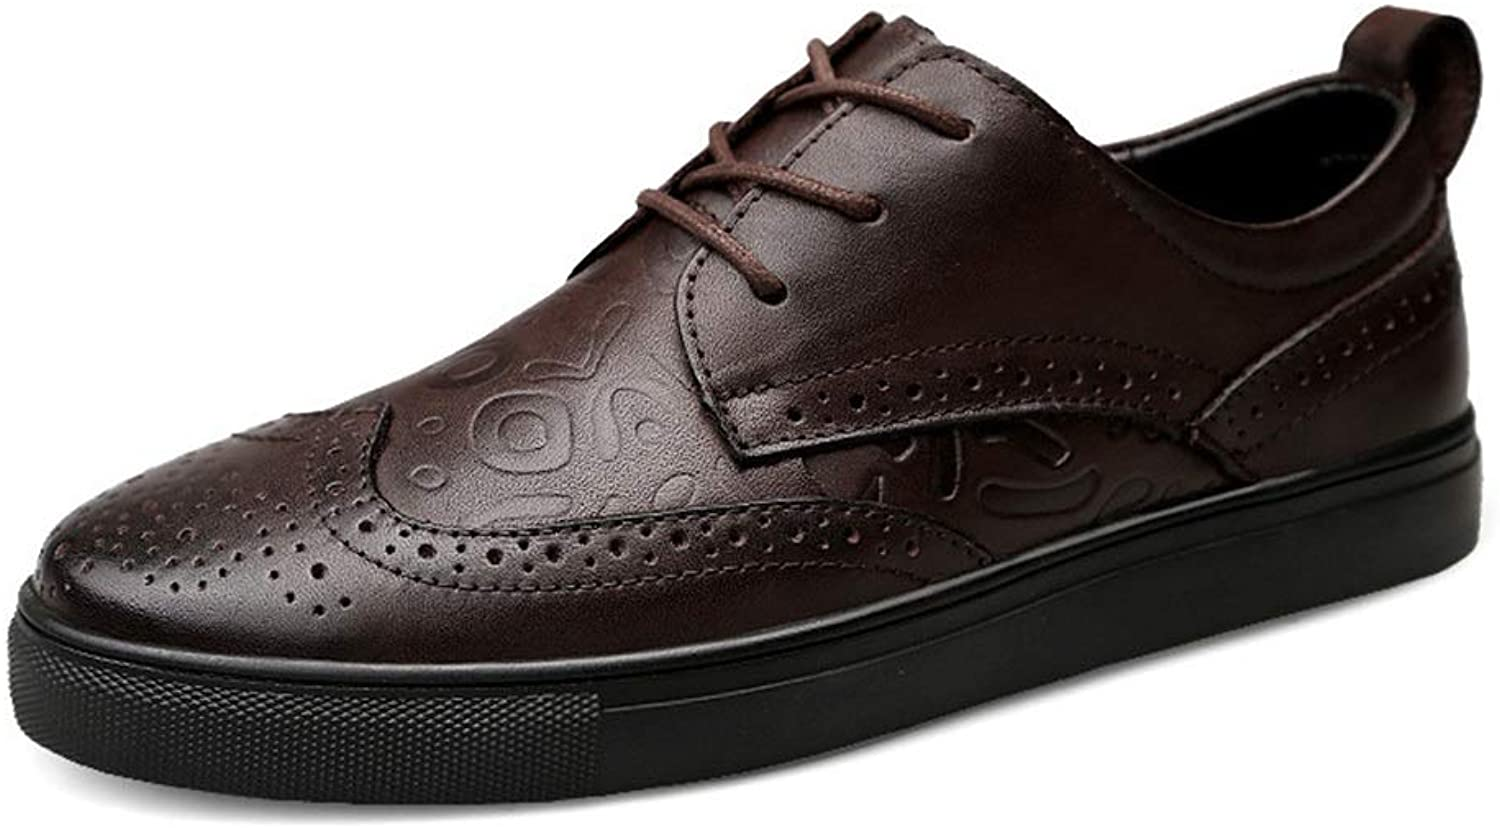 Board shoes Men's Leather Carved Business Low Help Size 24.0cm-28.5cm Brown shoes Leisure